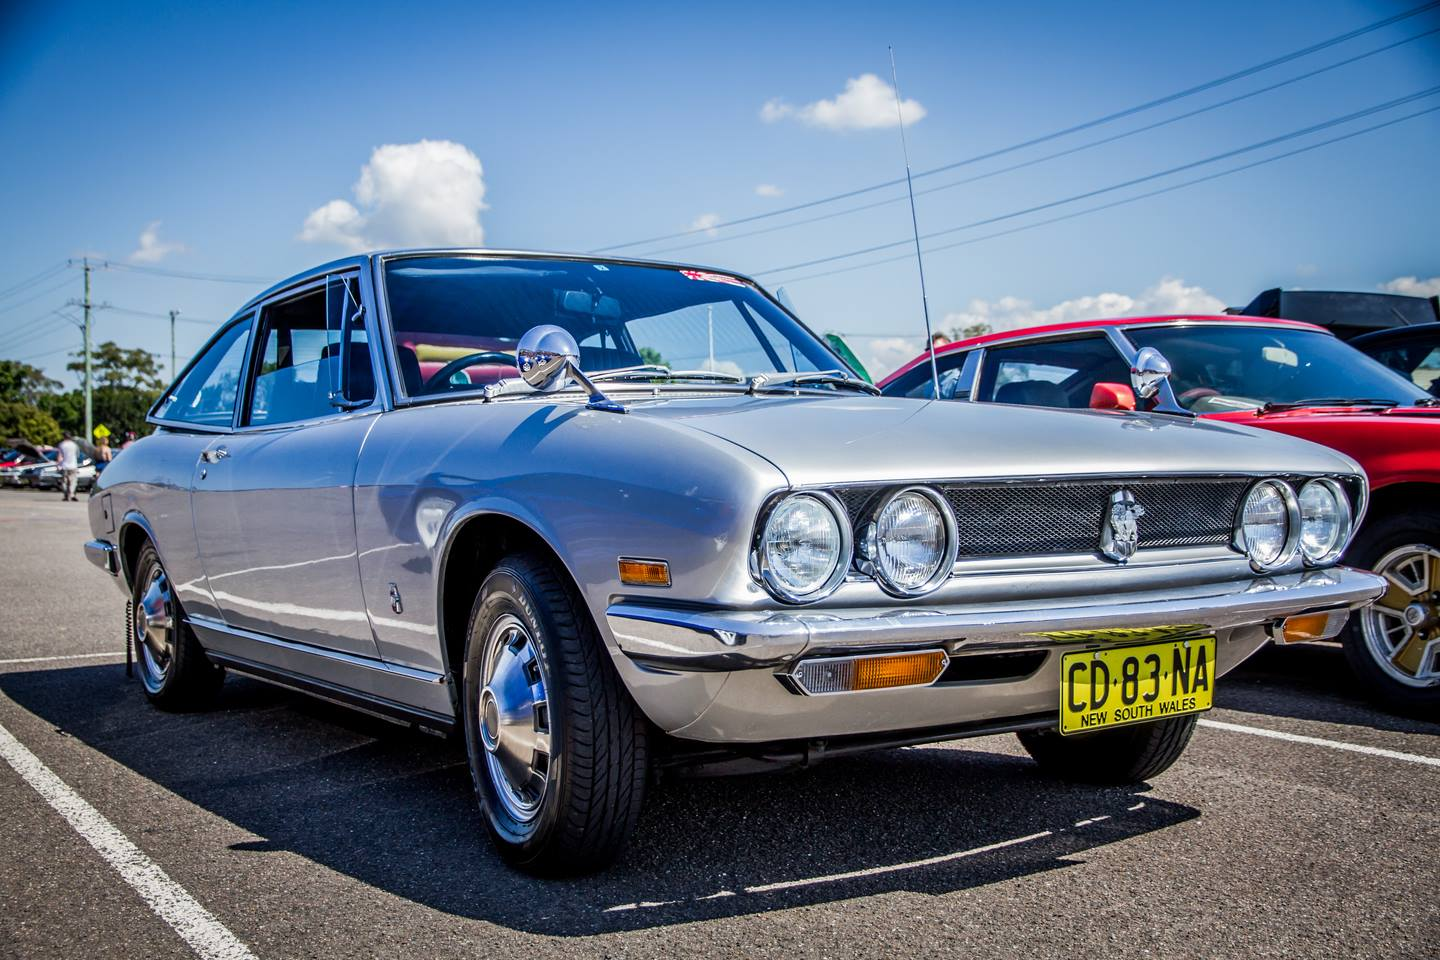 An immaculate Isuzu 117 coupe we imported to Australia that still had plastic over the door trims! Owner won a show'n'shine event on its first outing.